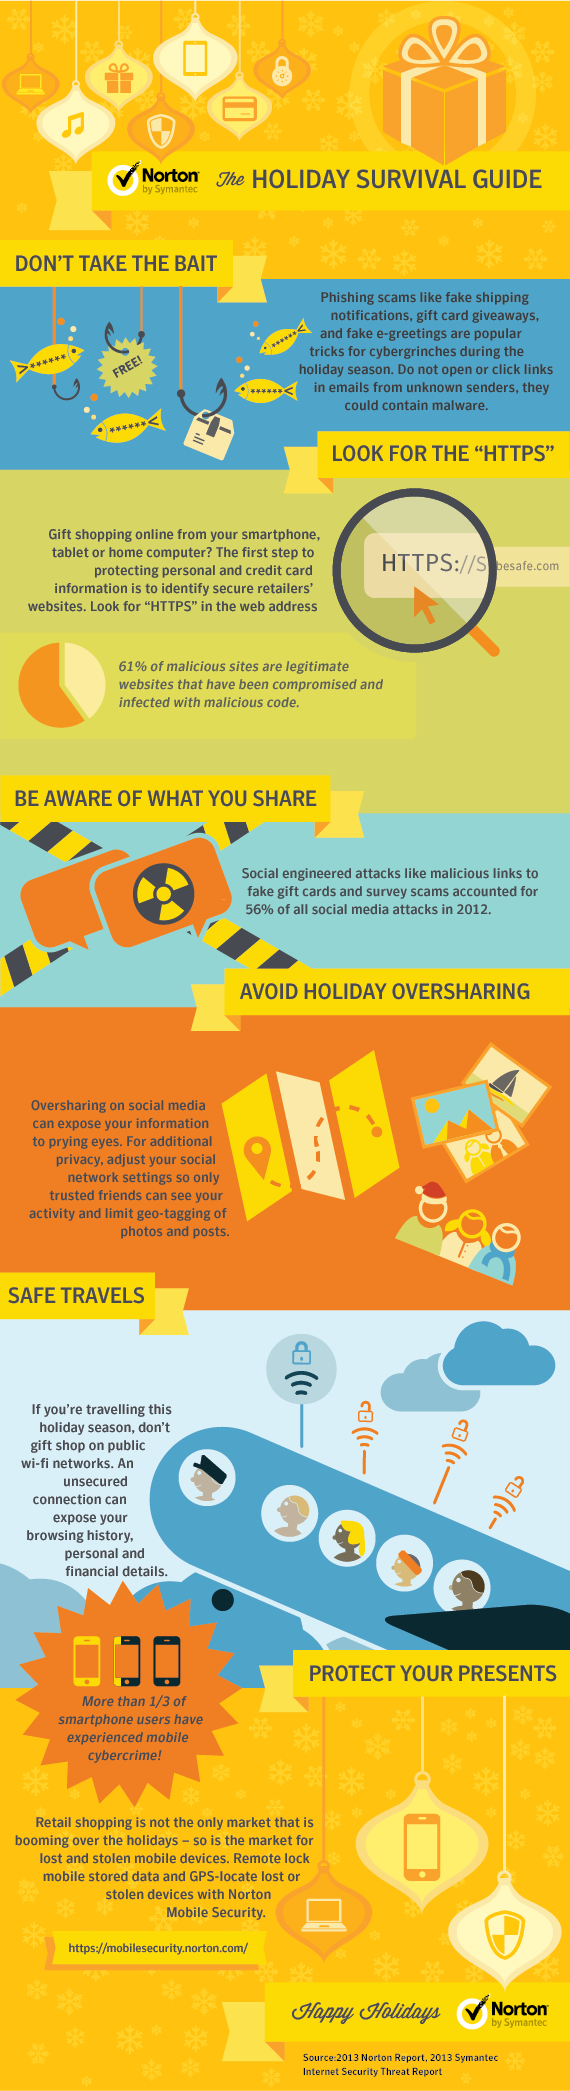 Protect Your Presents: A Holiday Survival Guide